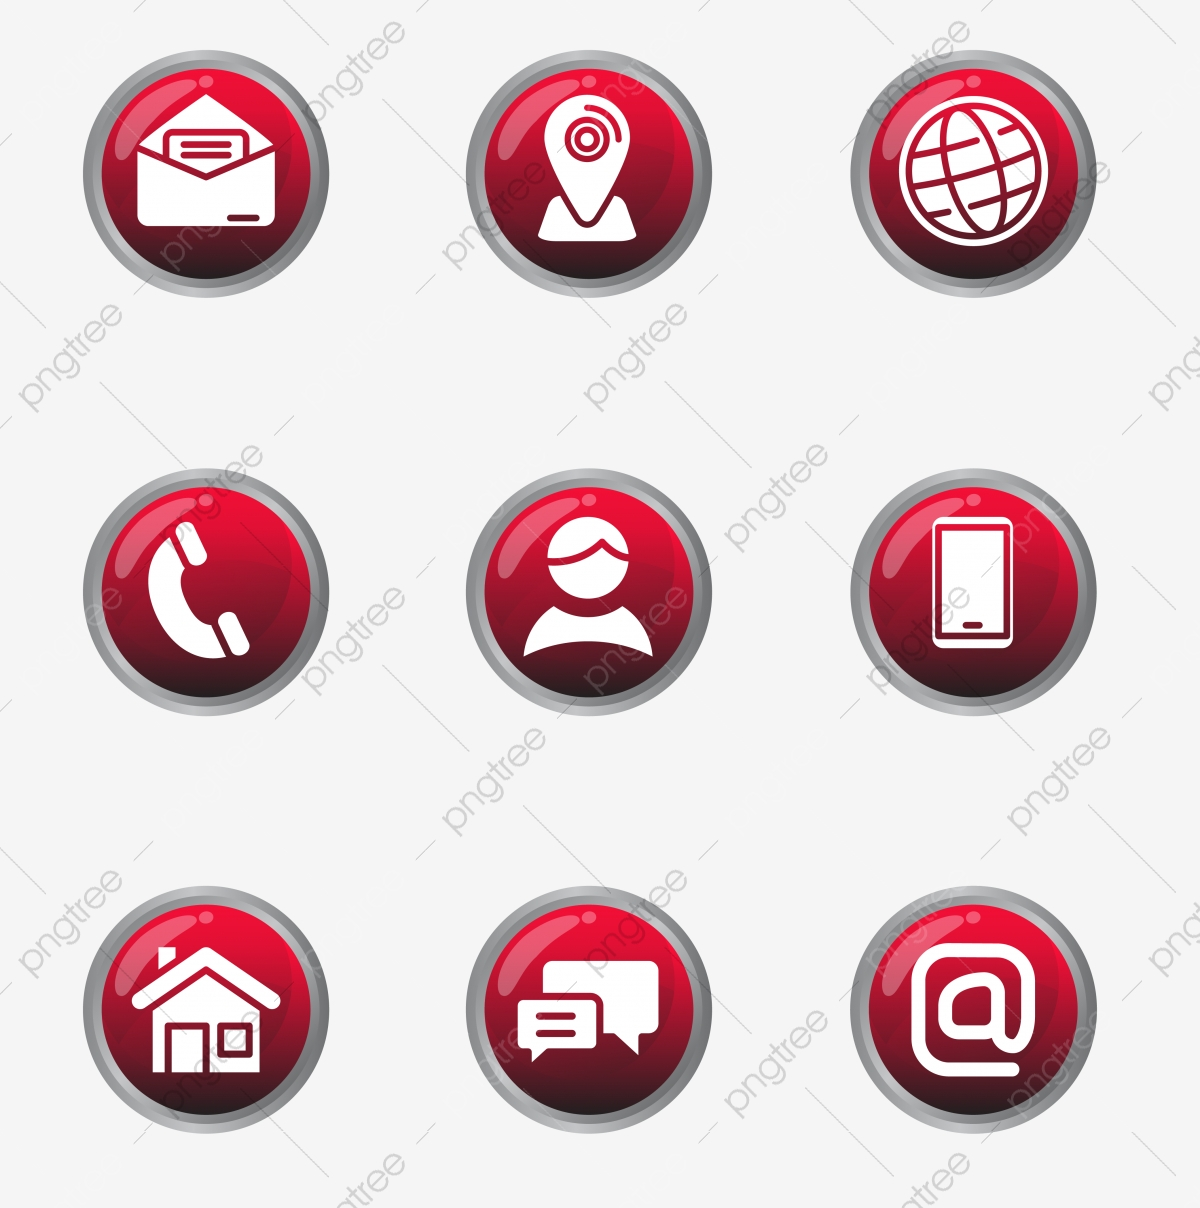 Contacts Icon Png Images Vector And Psd Files Free Download On Pngtree